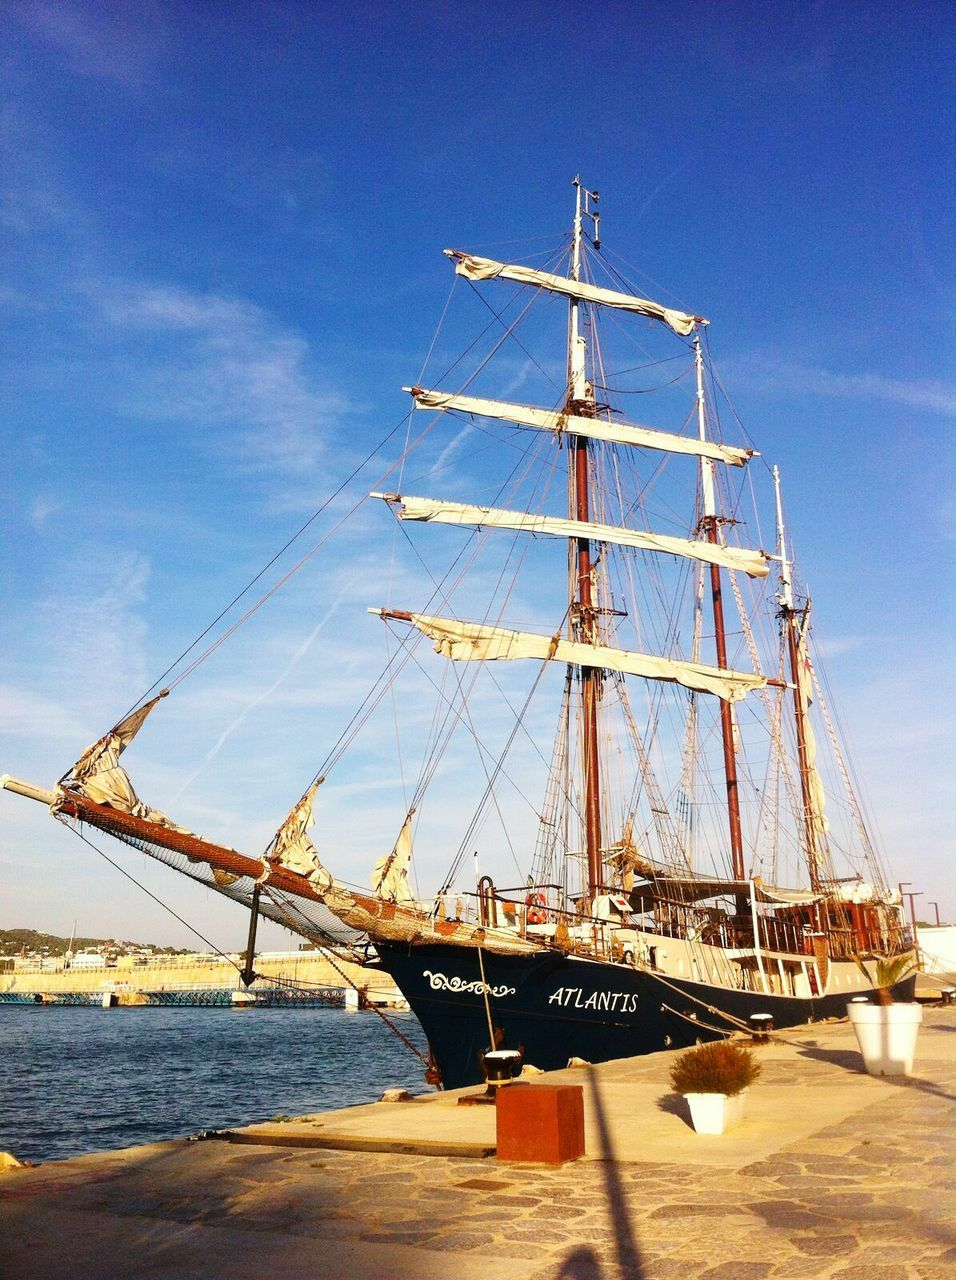 nautical vessel, transportation, sky, sea, mode of transport, mast, day, outdoors, ship, no people, water, blue, moored, cloud - sky, tall ship, sailboat, harbor, commercial dock, sailing ship, nature, sailing